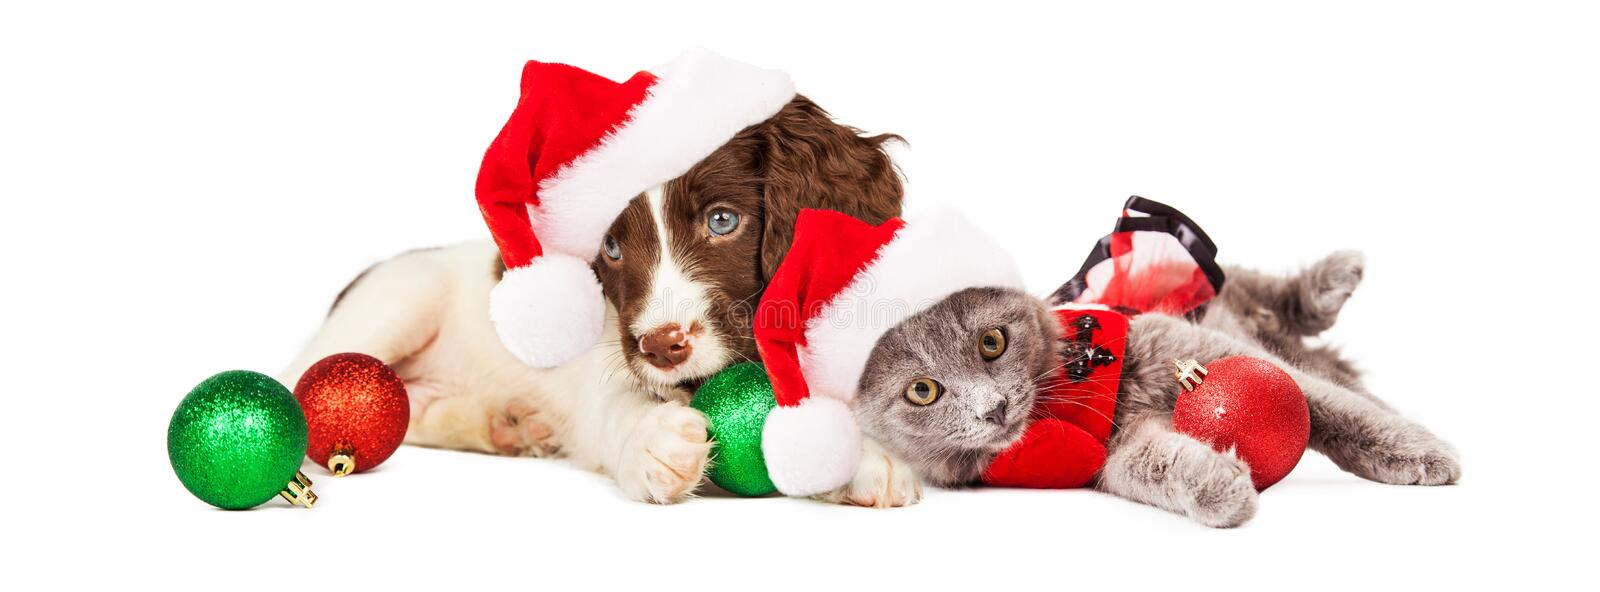 Puppy en Kitten Laying With Christmas Ornaments stock foto's